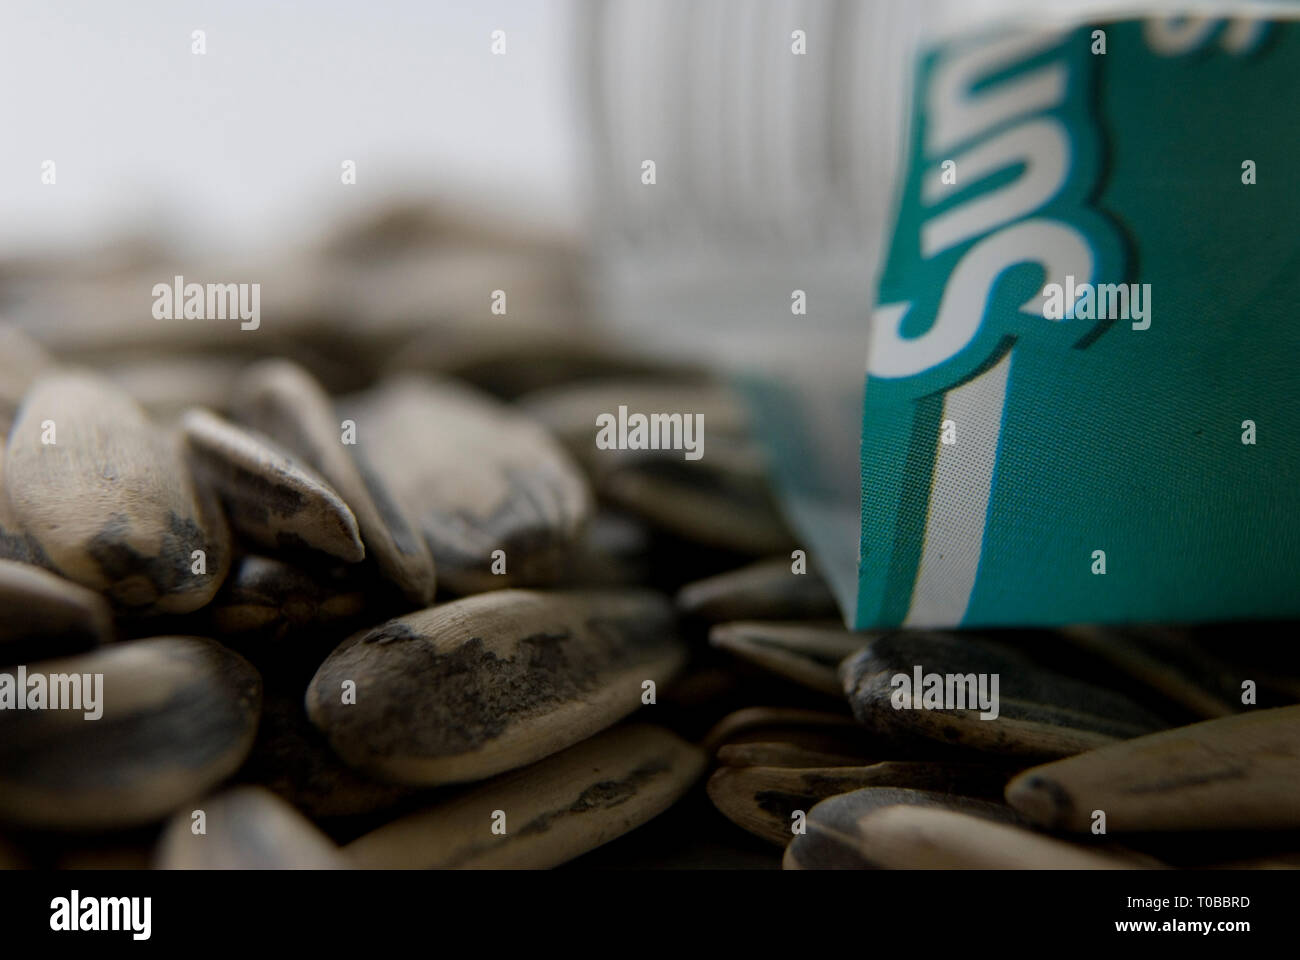 Closeup studio shot shows pile of sunflower seeds with blurred background. - Stock Image